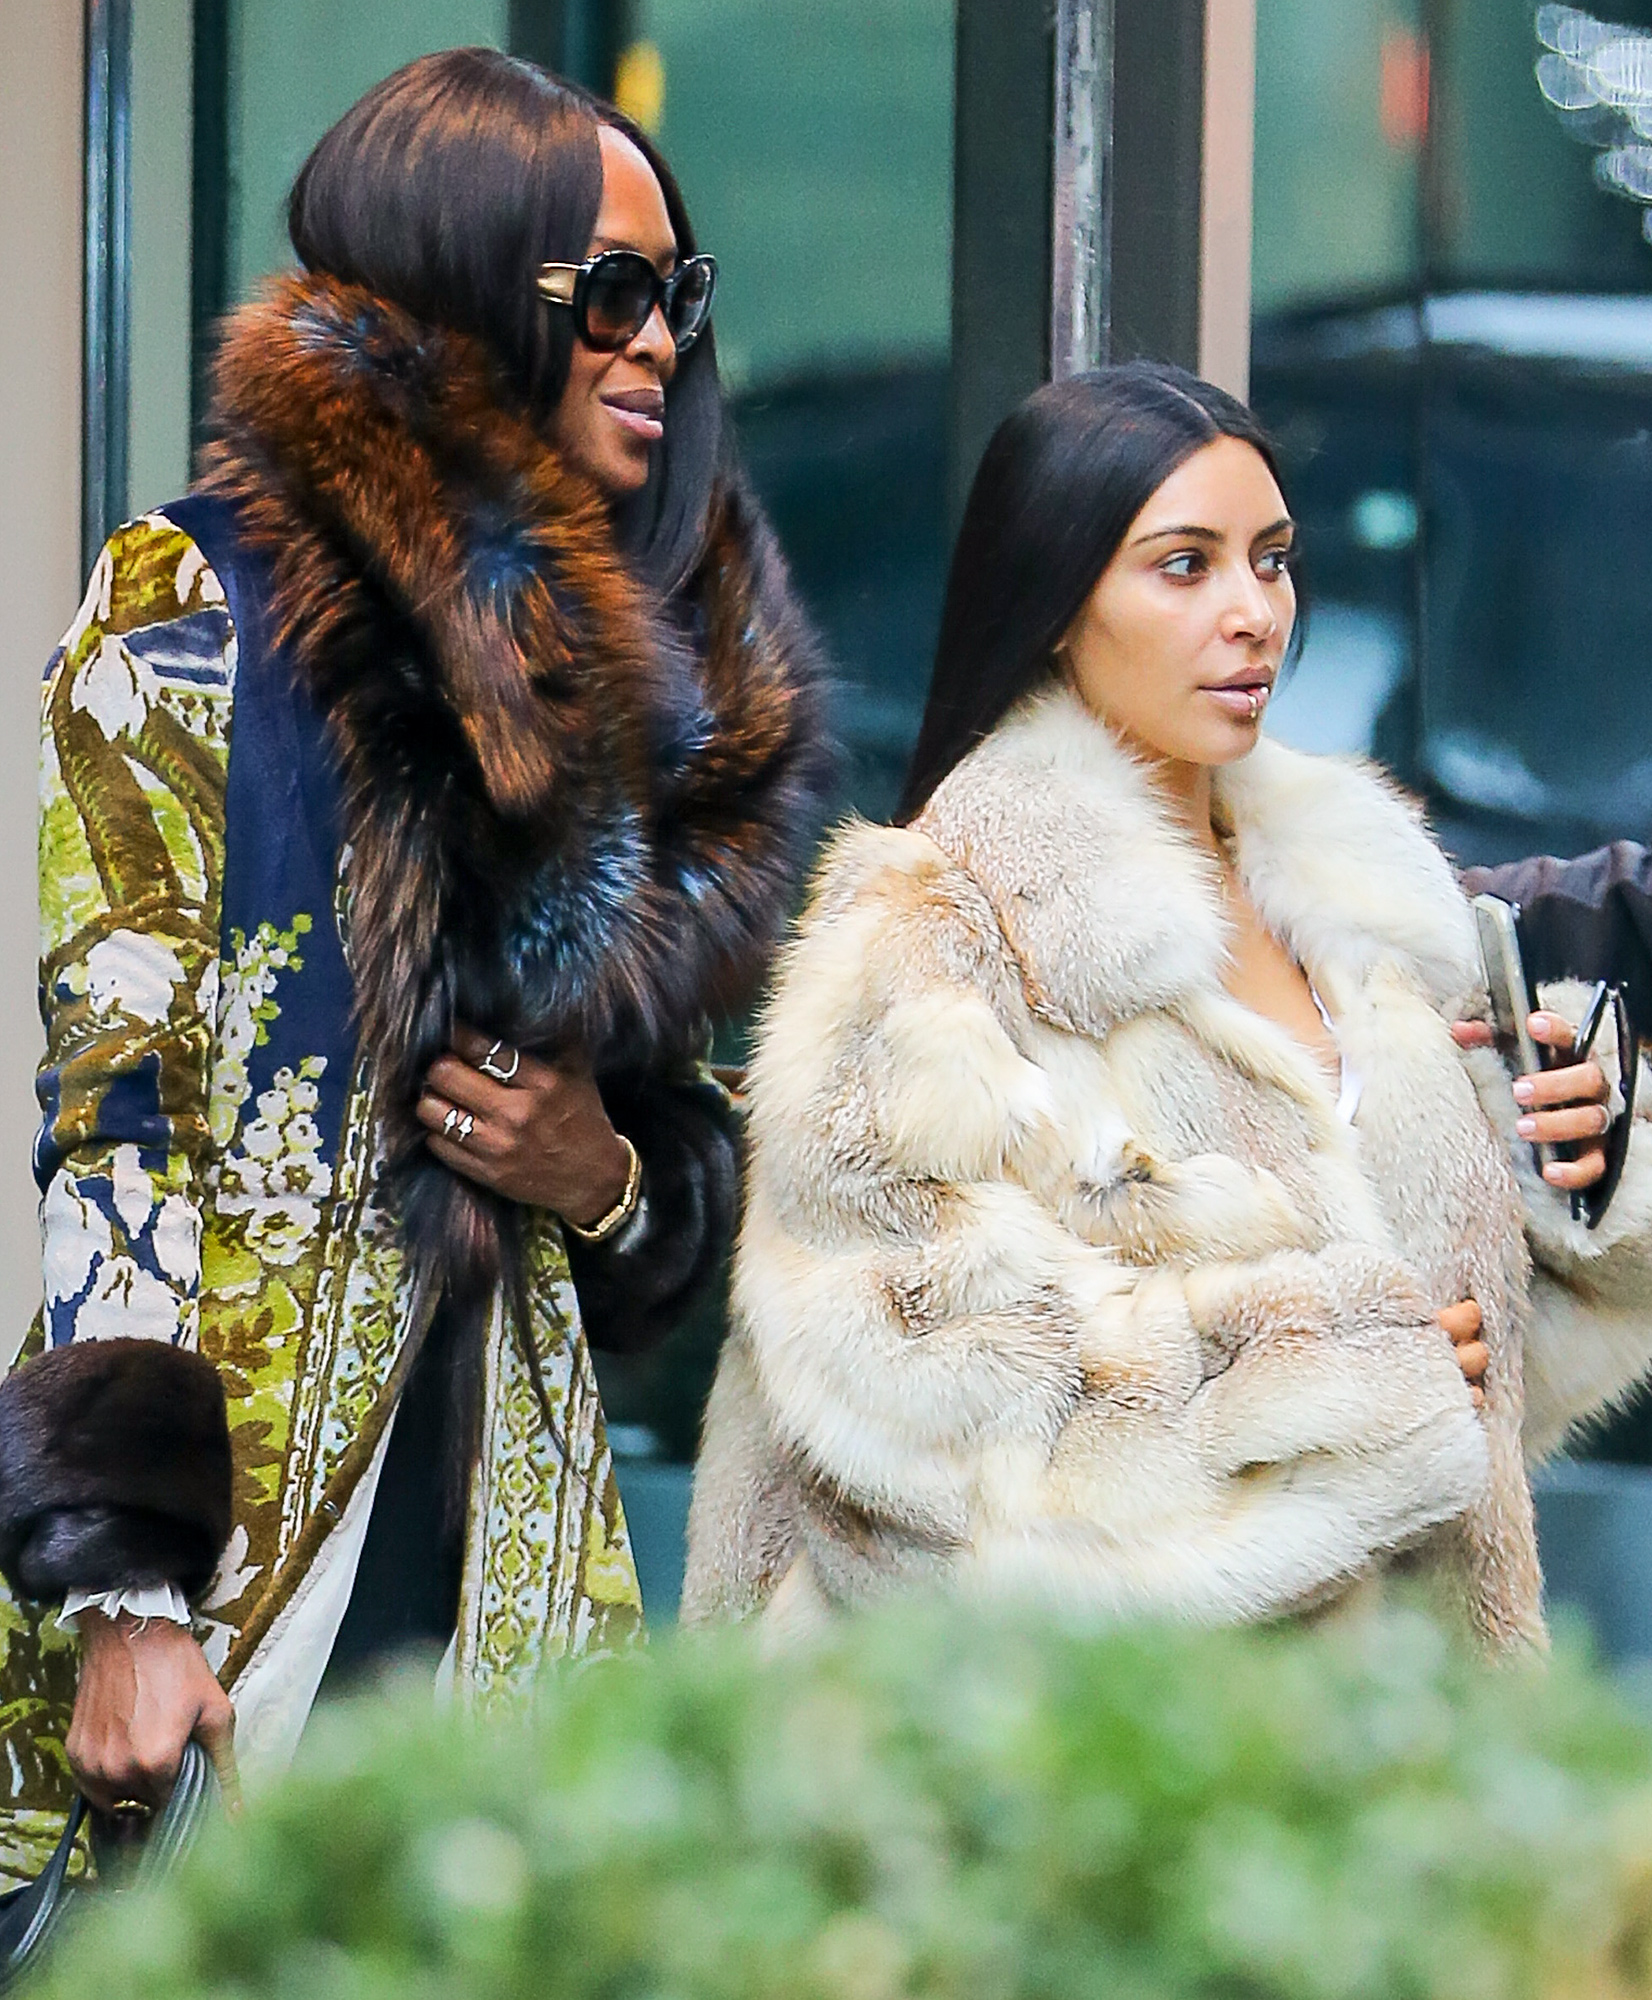 EXCLUSIVE: Kim Kardashian and Naomi Campbell have lunch at Milos Restaurant in New York City